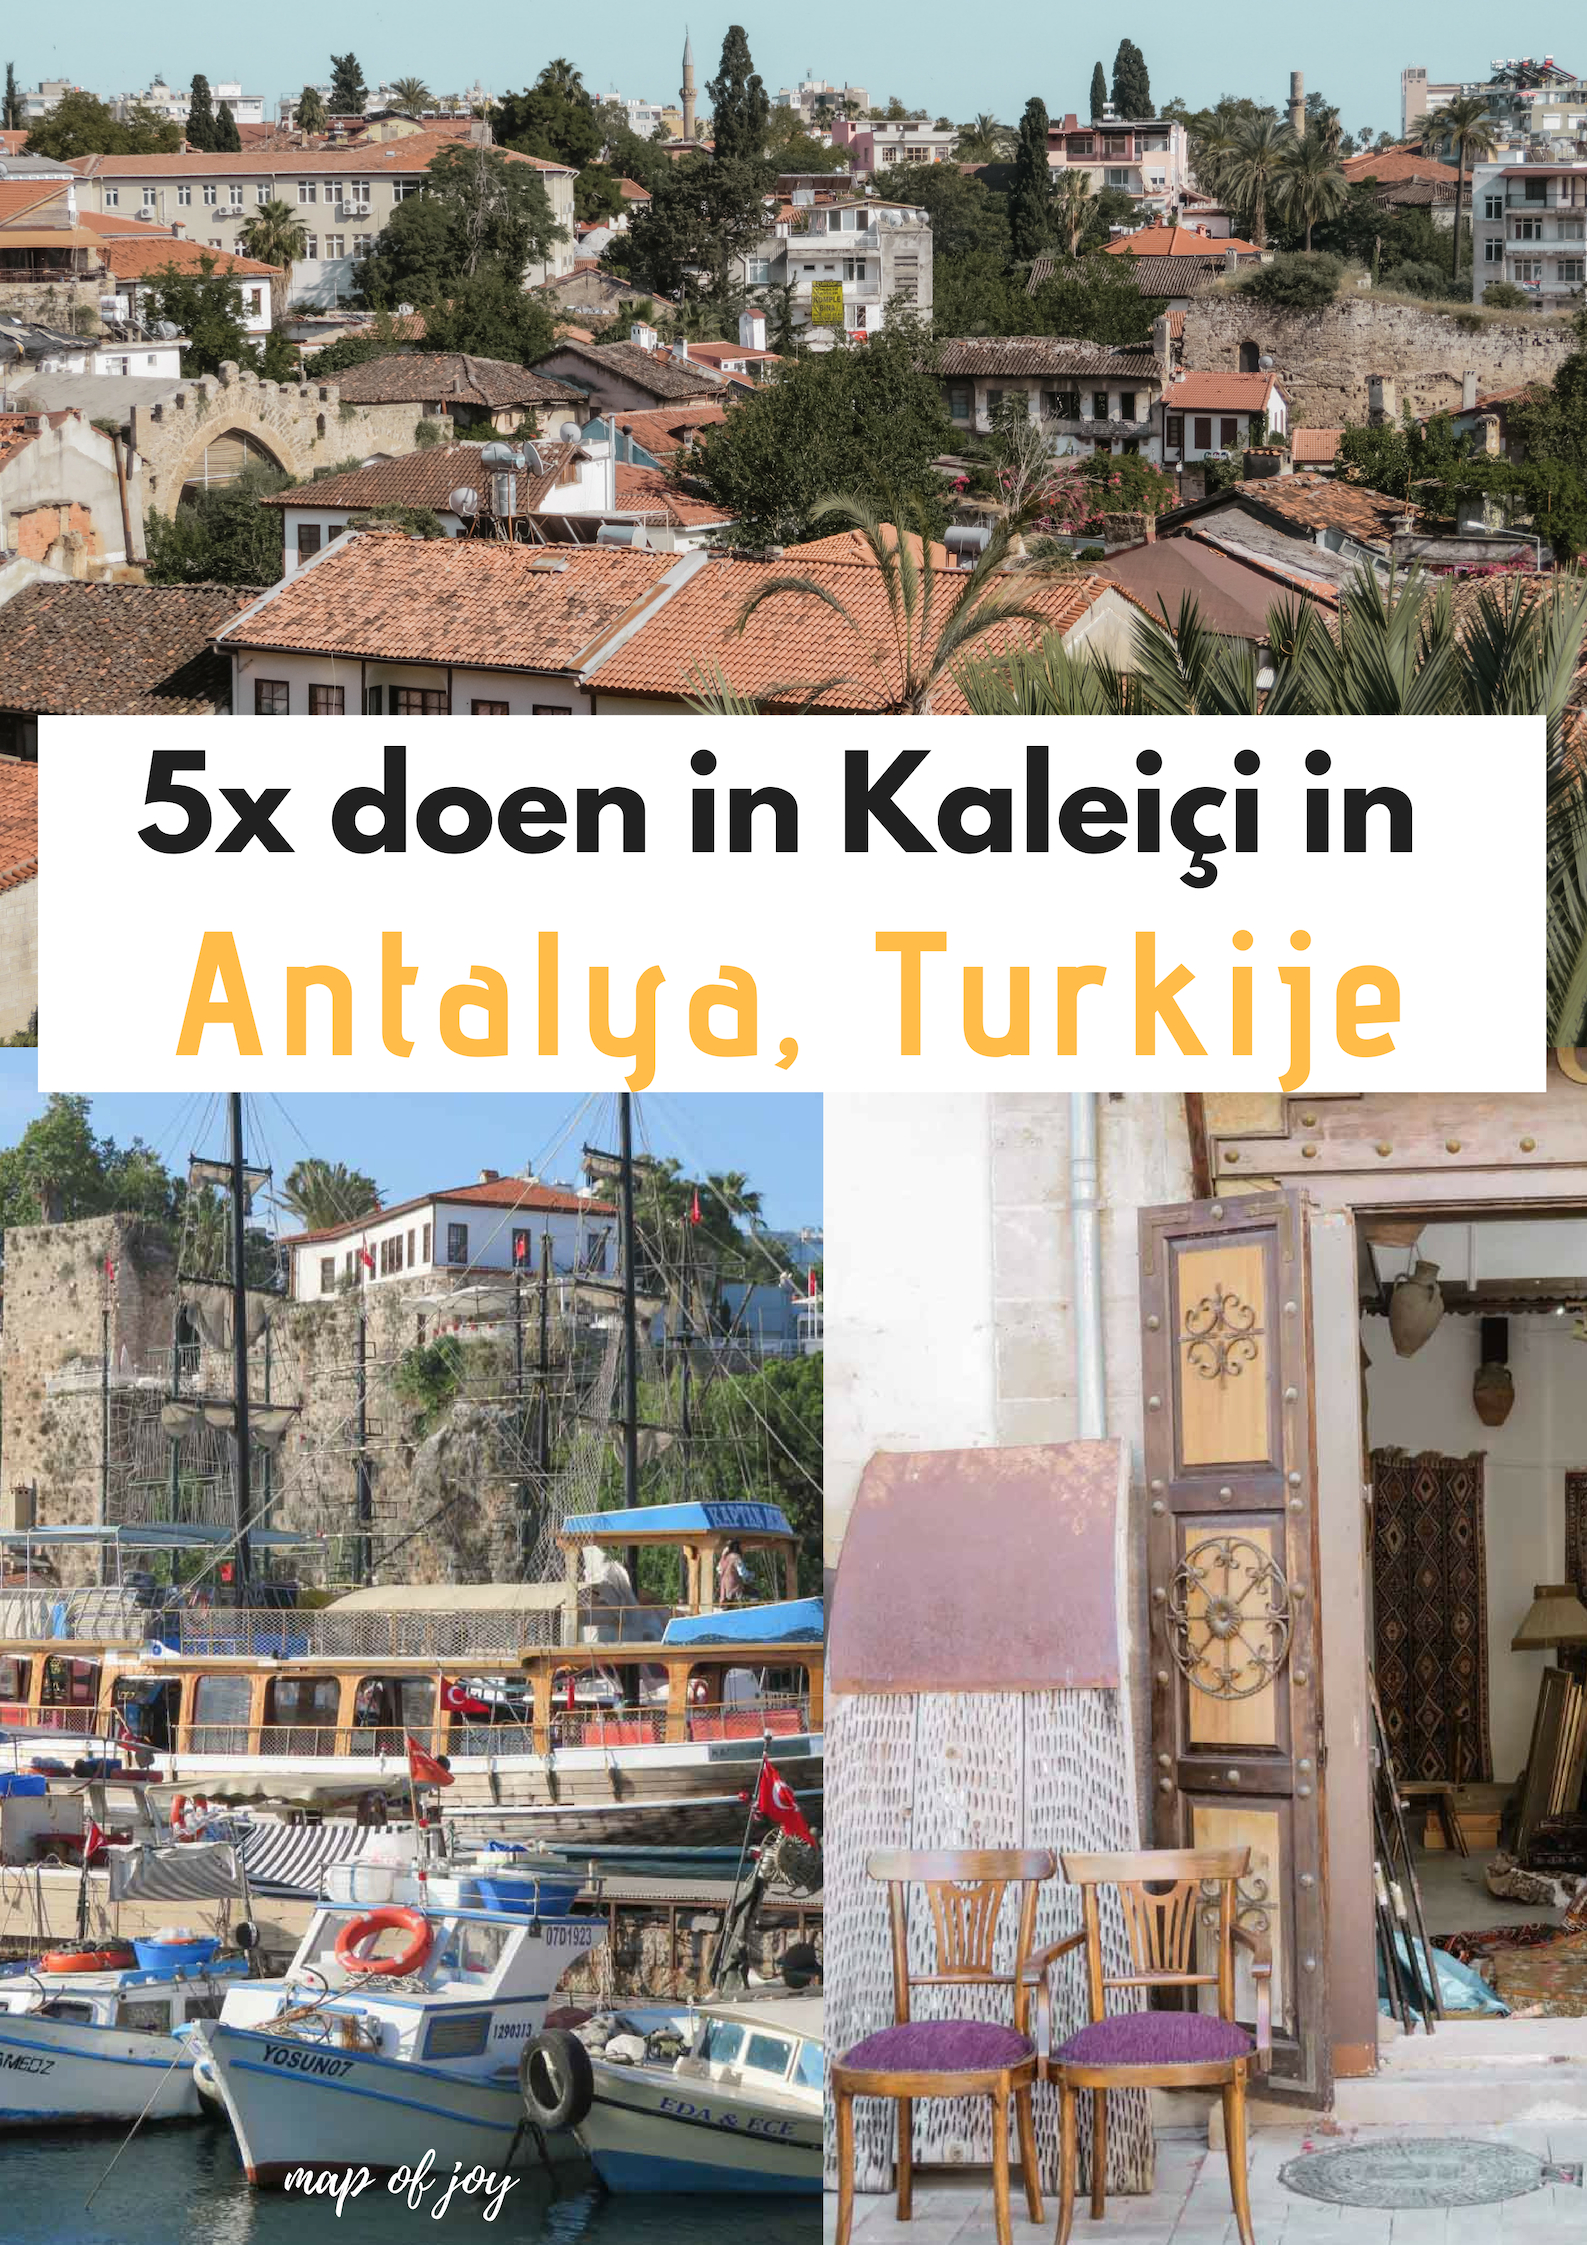 5x doen in Kaleiçi in Antalya, Turkije - Map of Joy